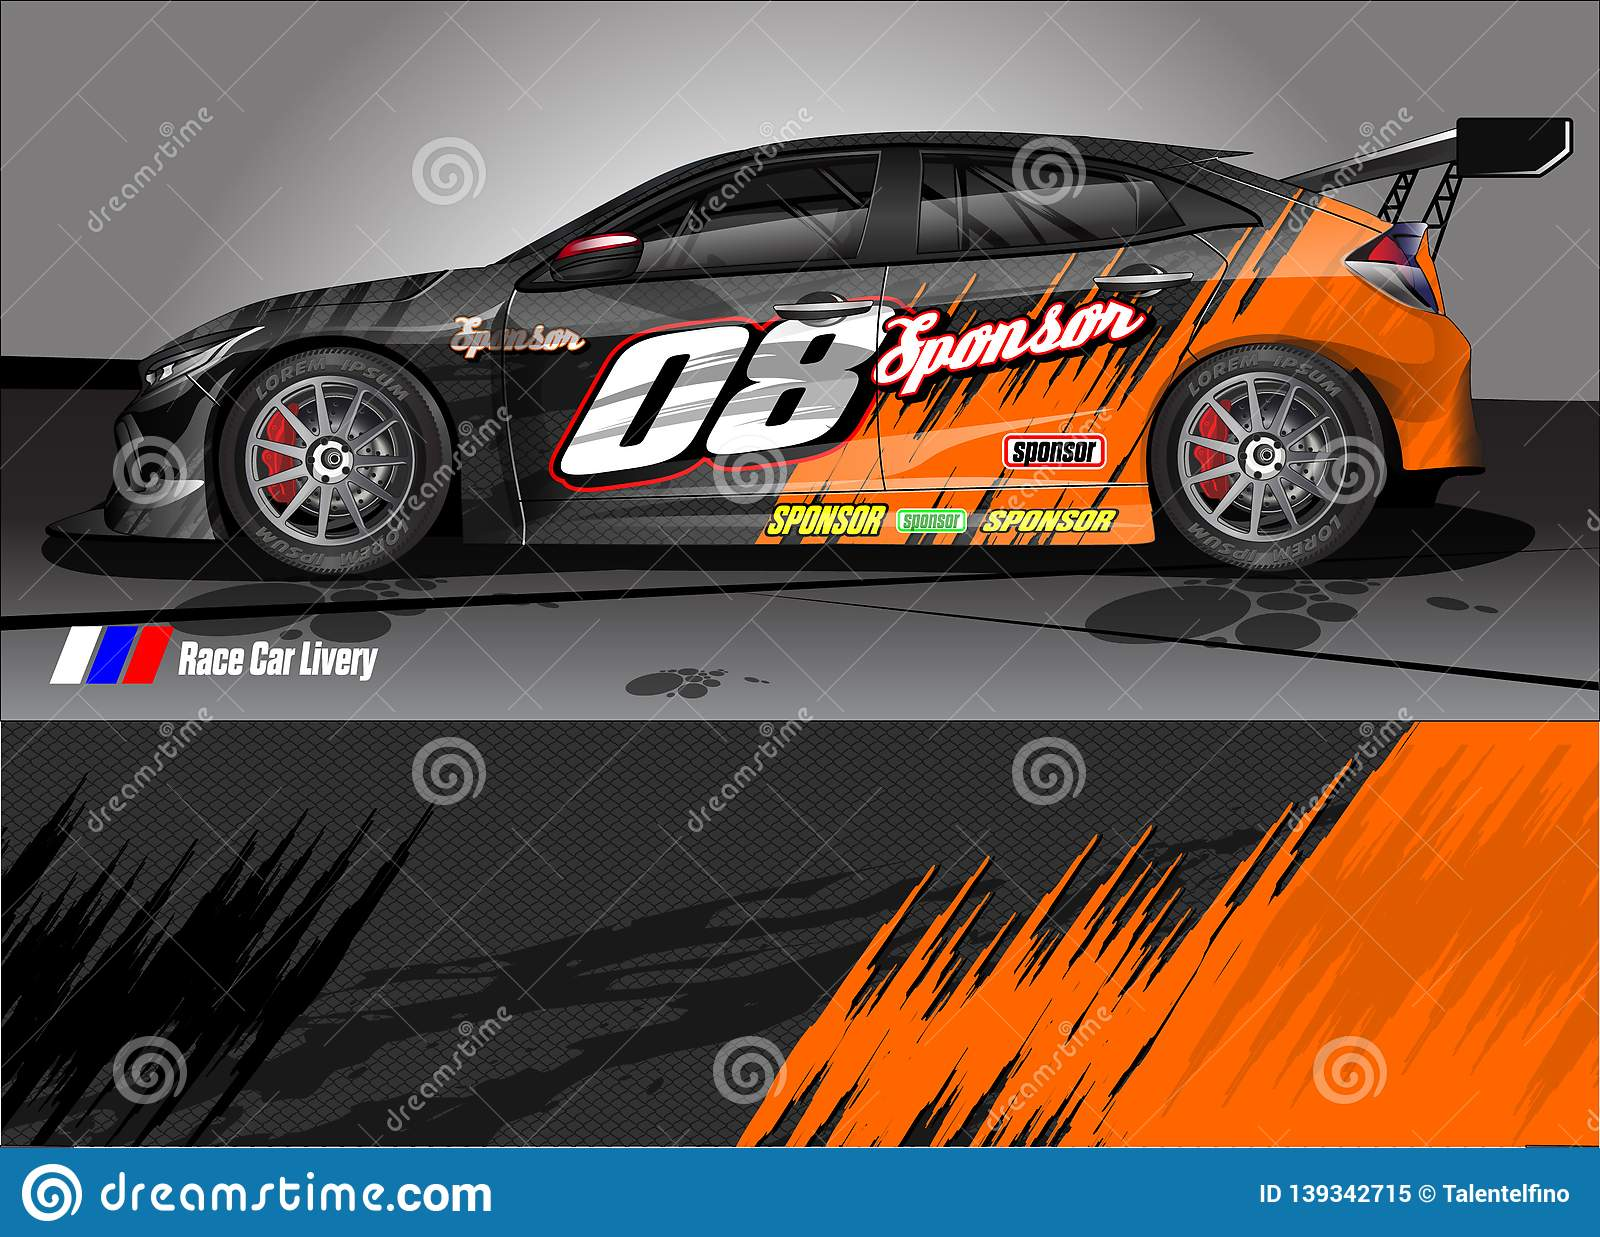 e0ef01c8add Race Car Livery Graphic . Abstract Grunge Background Design For ...